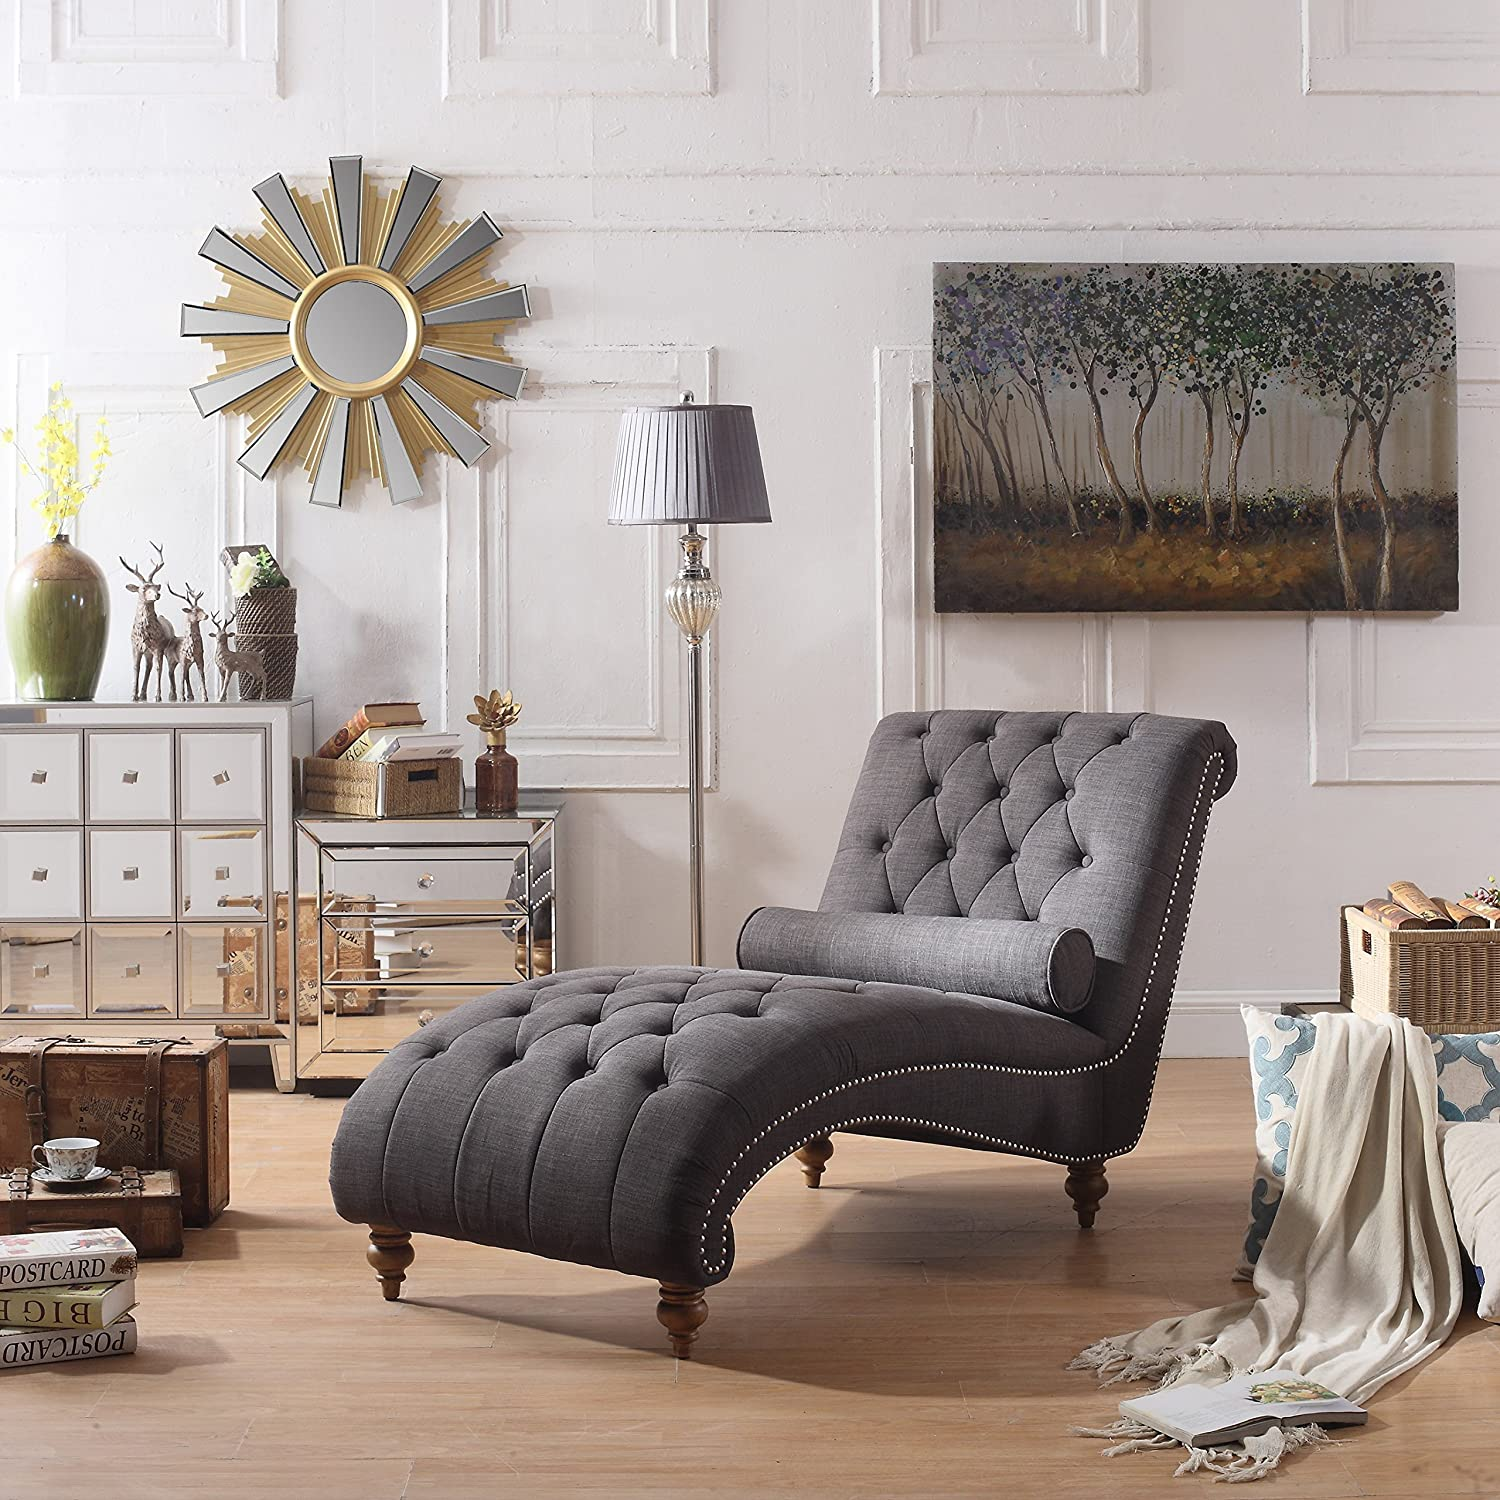 Rosevera Teofila Credence Tufted Chaise Standard Lounge Chair Charcoal High quality new